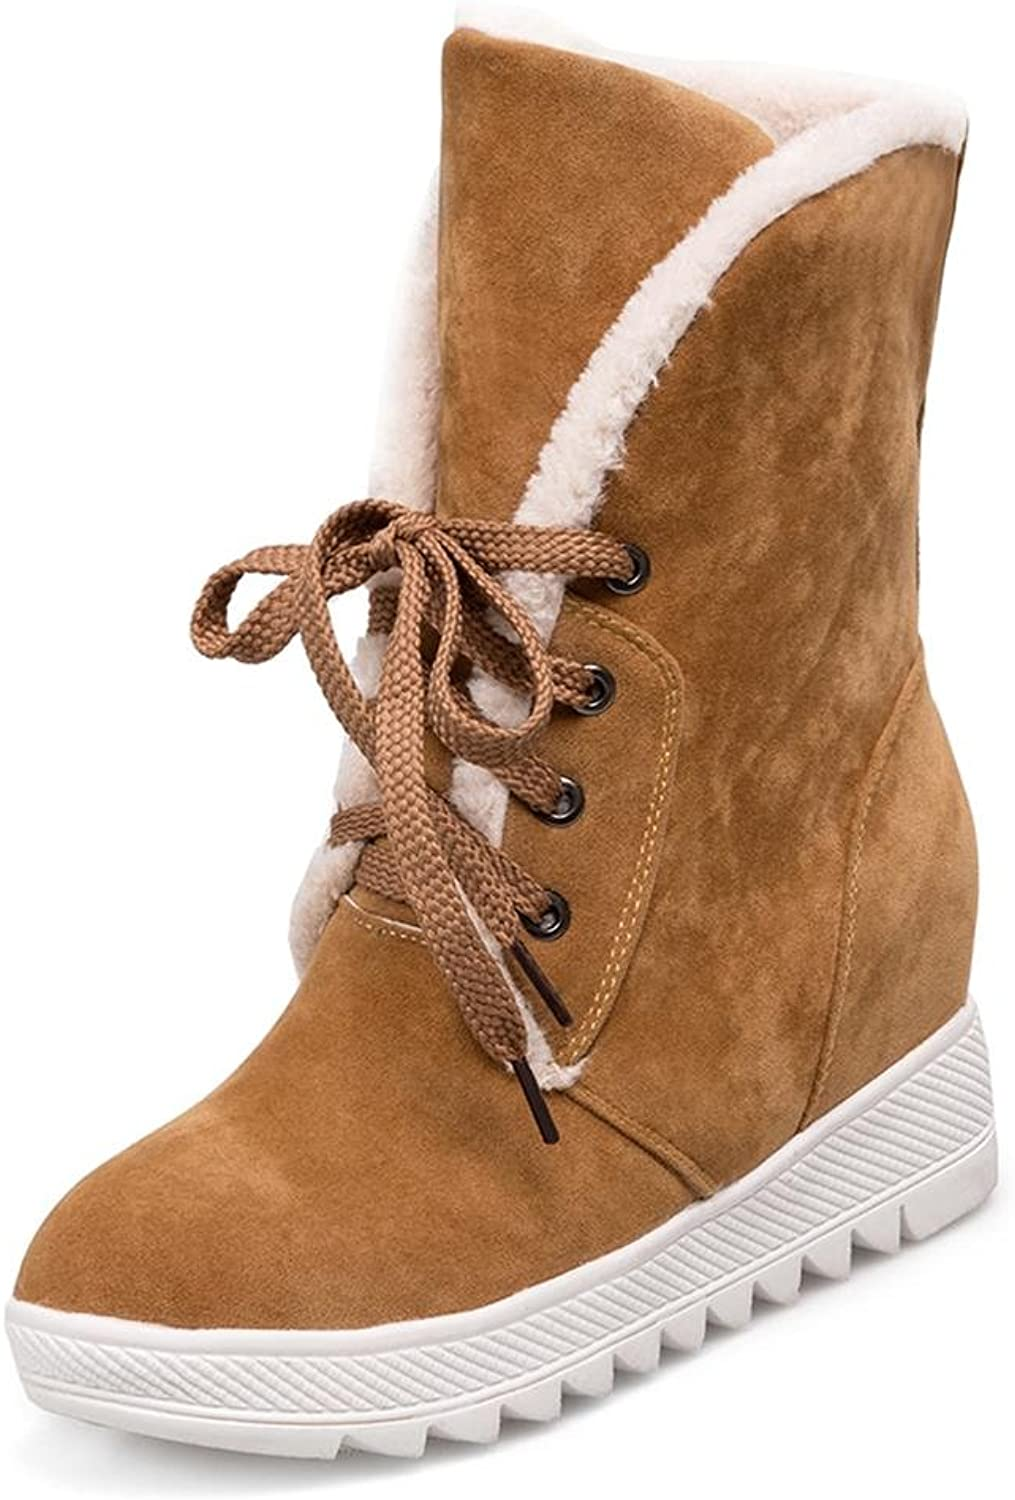 LIUshoes L&LGirls' Winter Snow Boots Autumn and Winter Cotton Boots Female Snow Boots Boots Plus Cashmere Keep Warm Within The Increase Lace Large Size shoes